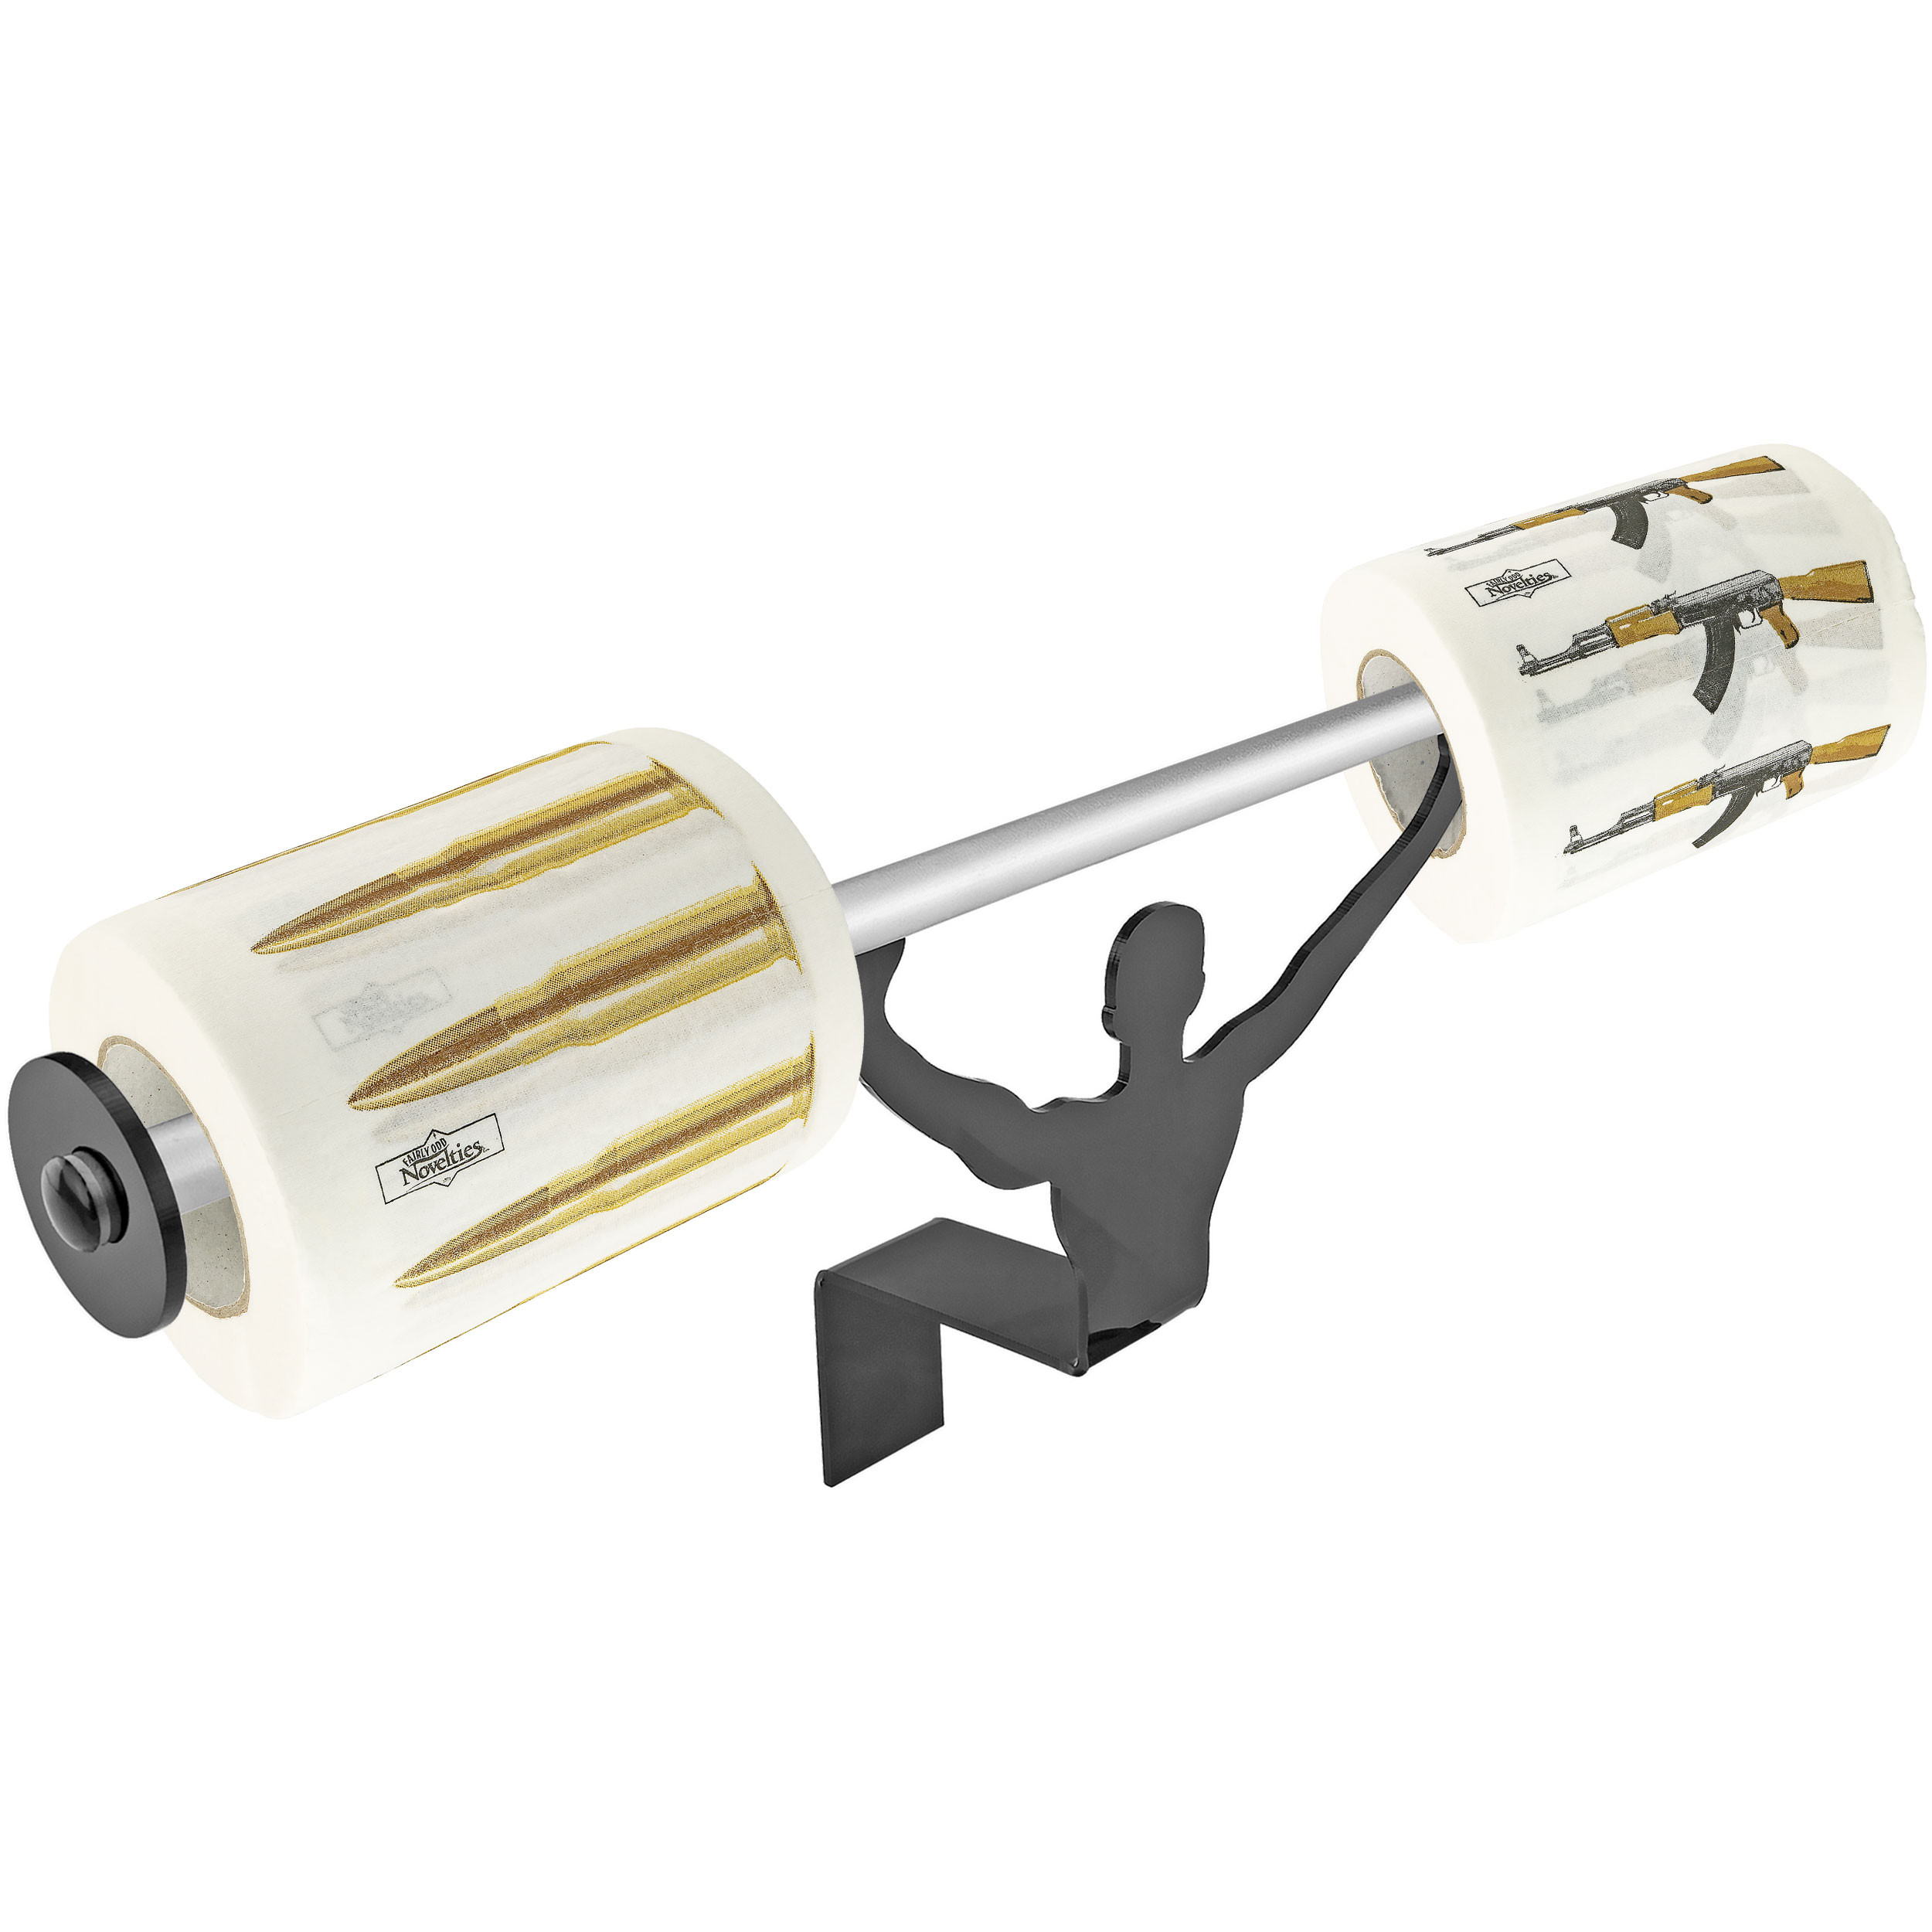 Fairly Odd Novelties AK47 Gun and Bullets Toilet Paper with Strong Man Holder Gift Set